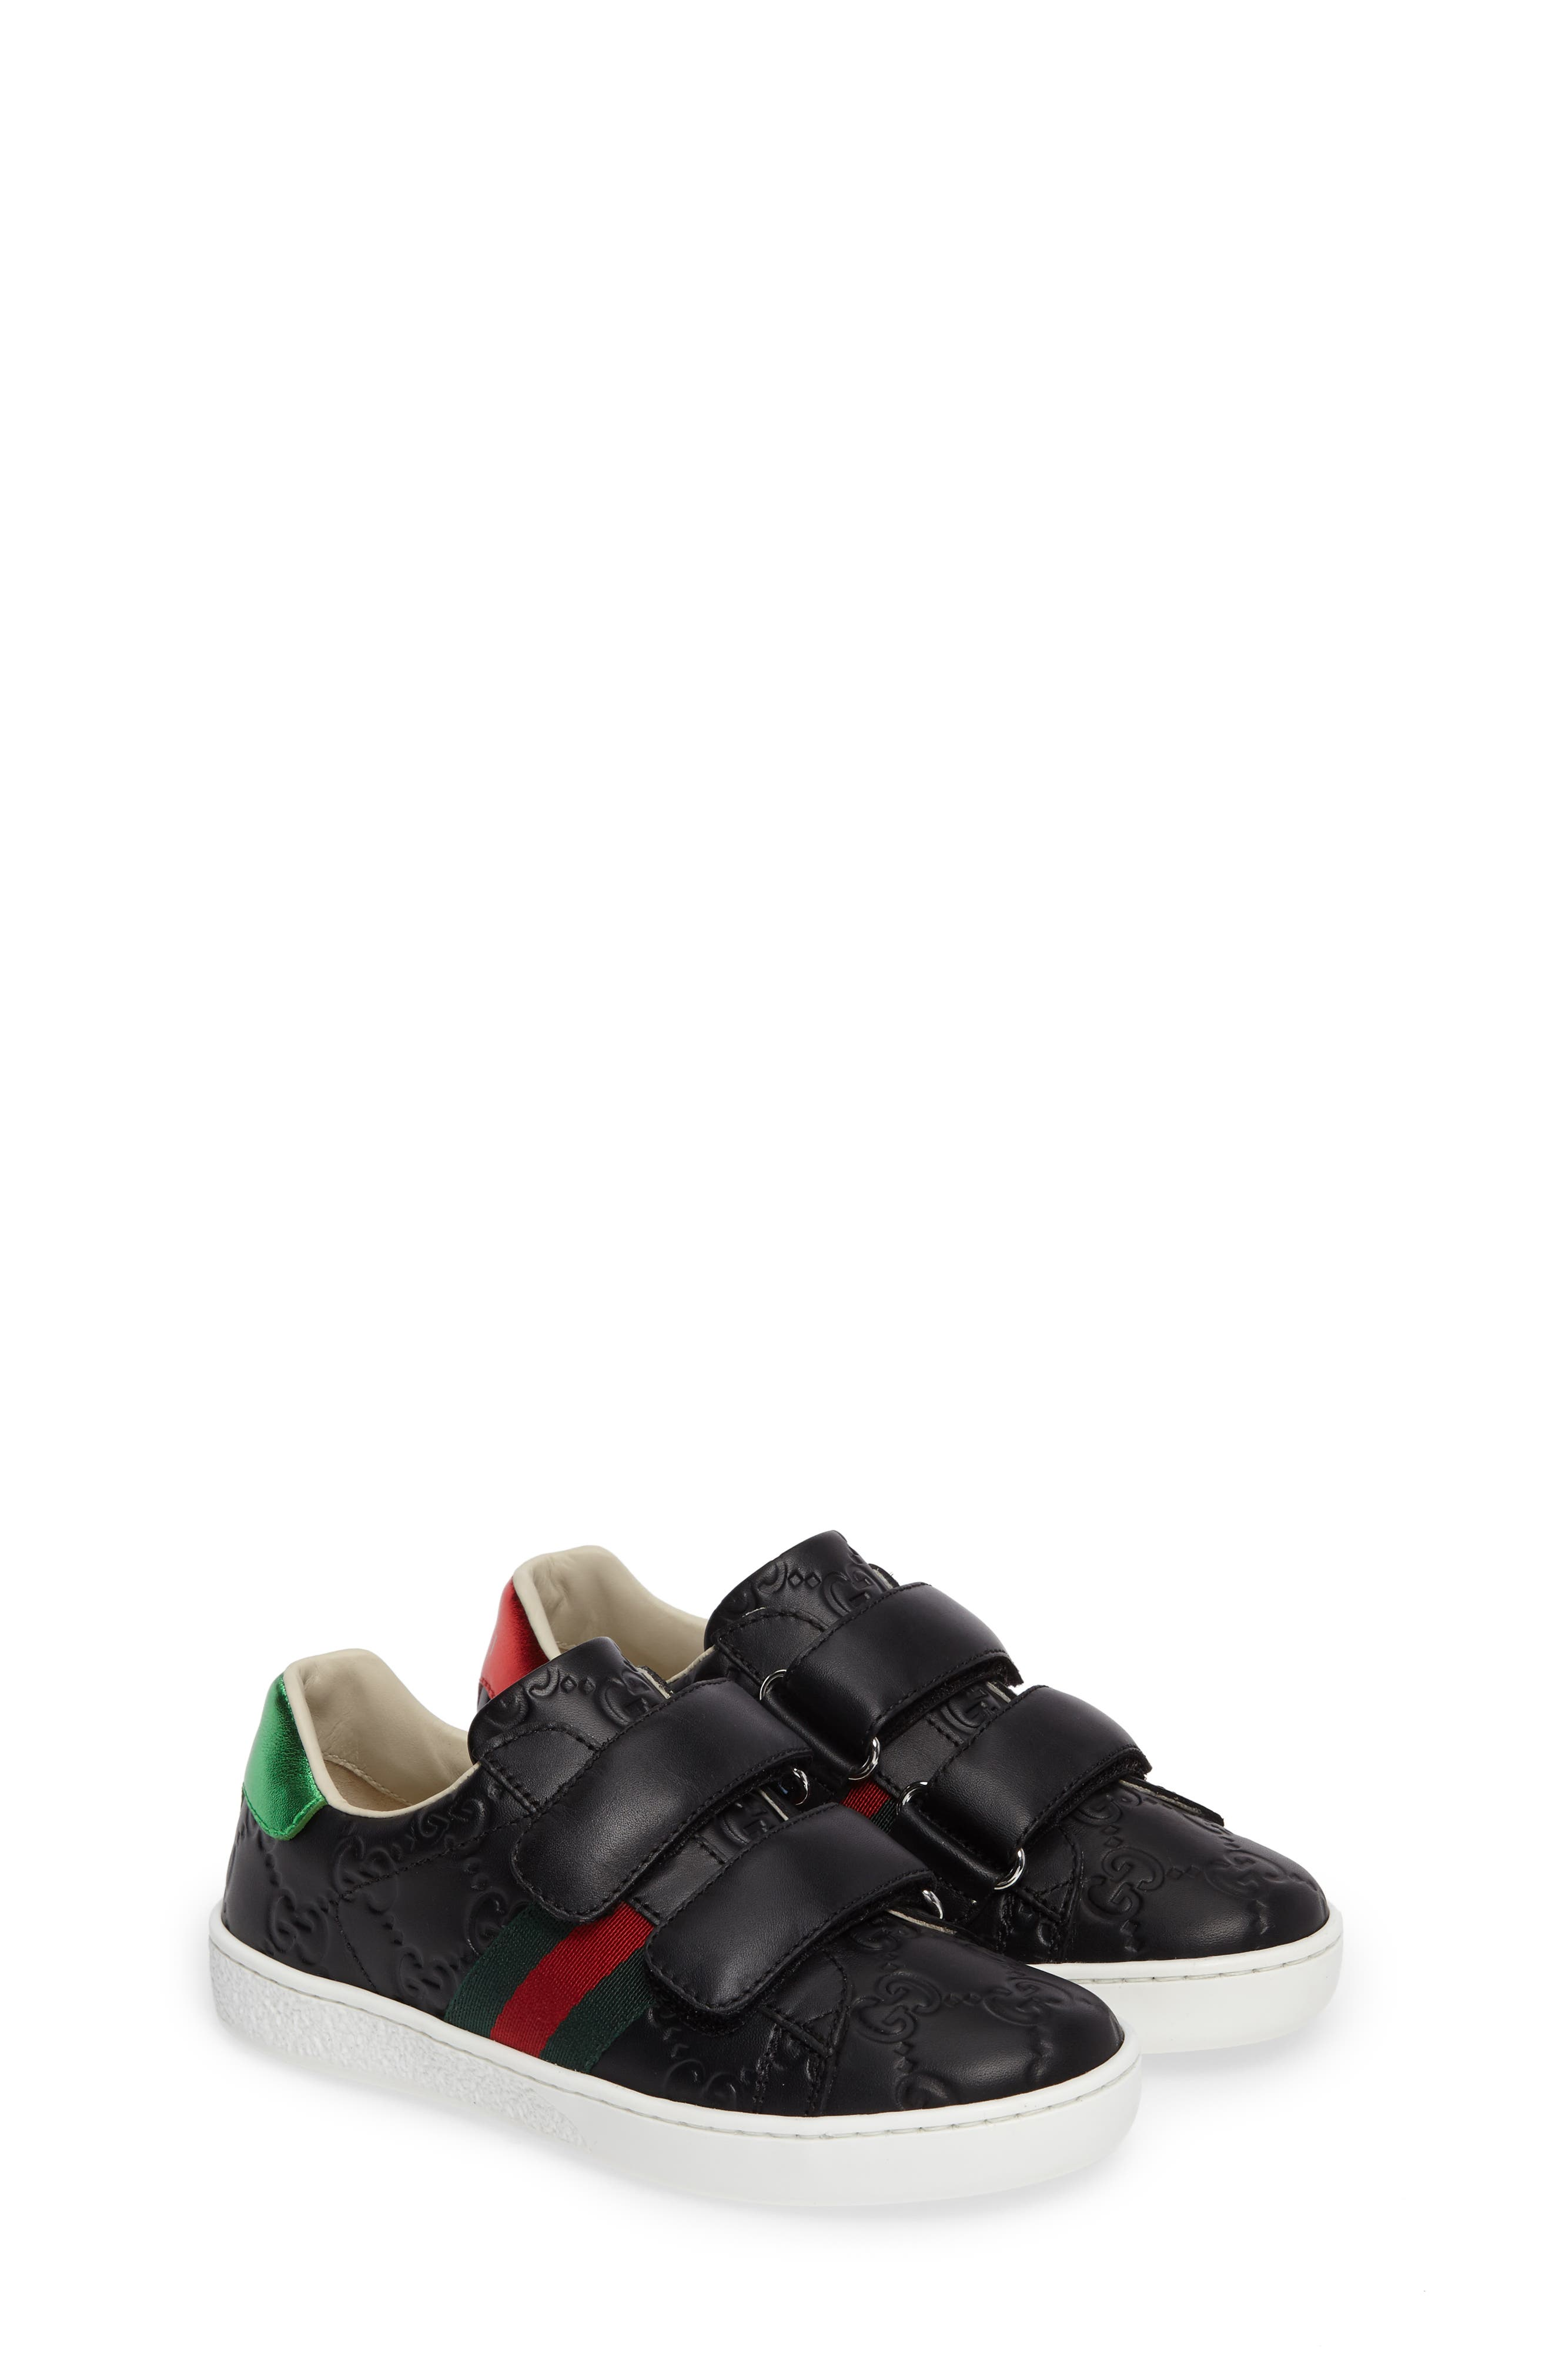 Alternate Image 3  - Gucci New Ace Sneaker (Toddler & Little Kid)